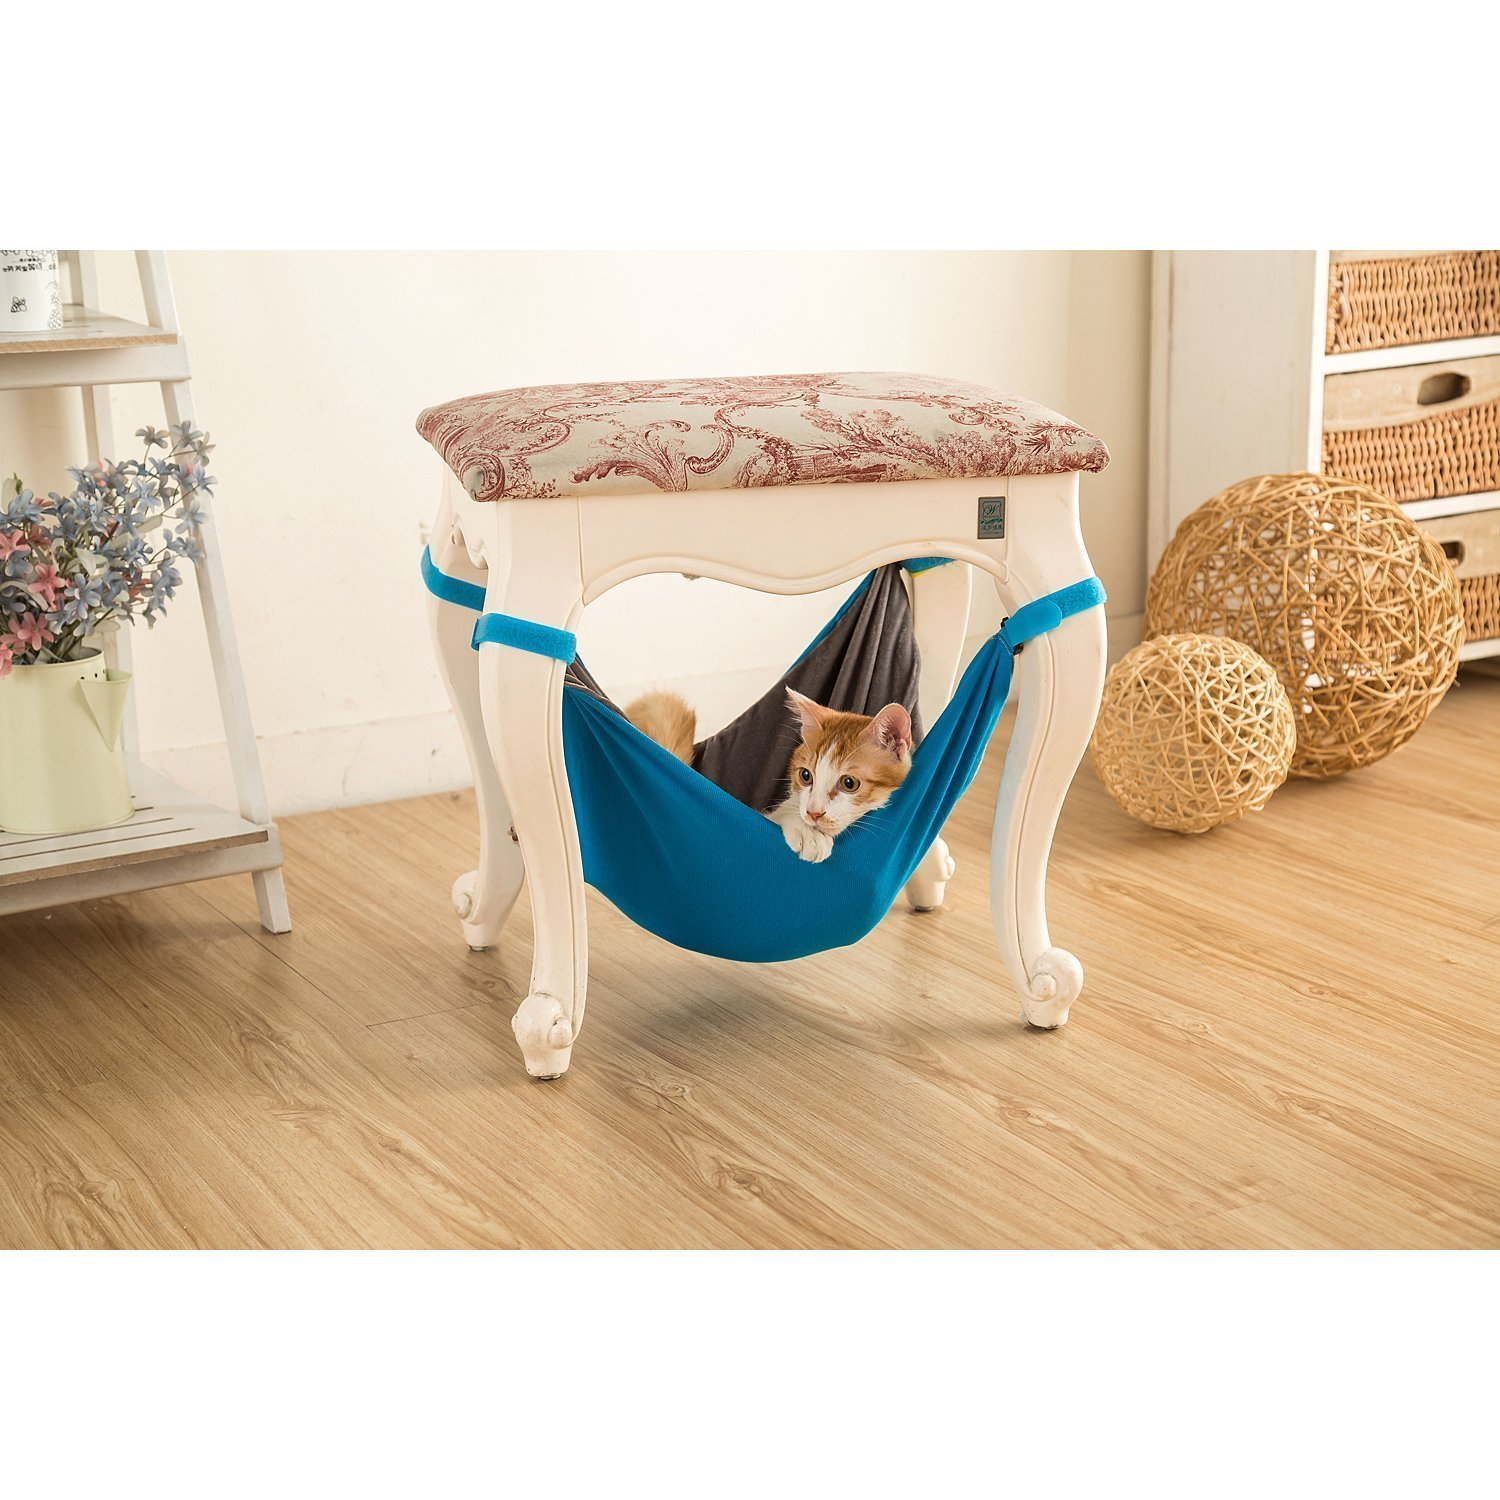 Cat Hammock Bed - Soft Warm and Comfortable Pet Hammock Use with Chair for Kitten, Ferret, Puppy, or Small Pet (Black) yuesheng